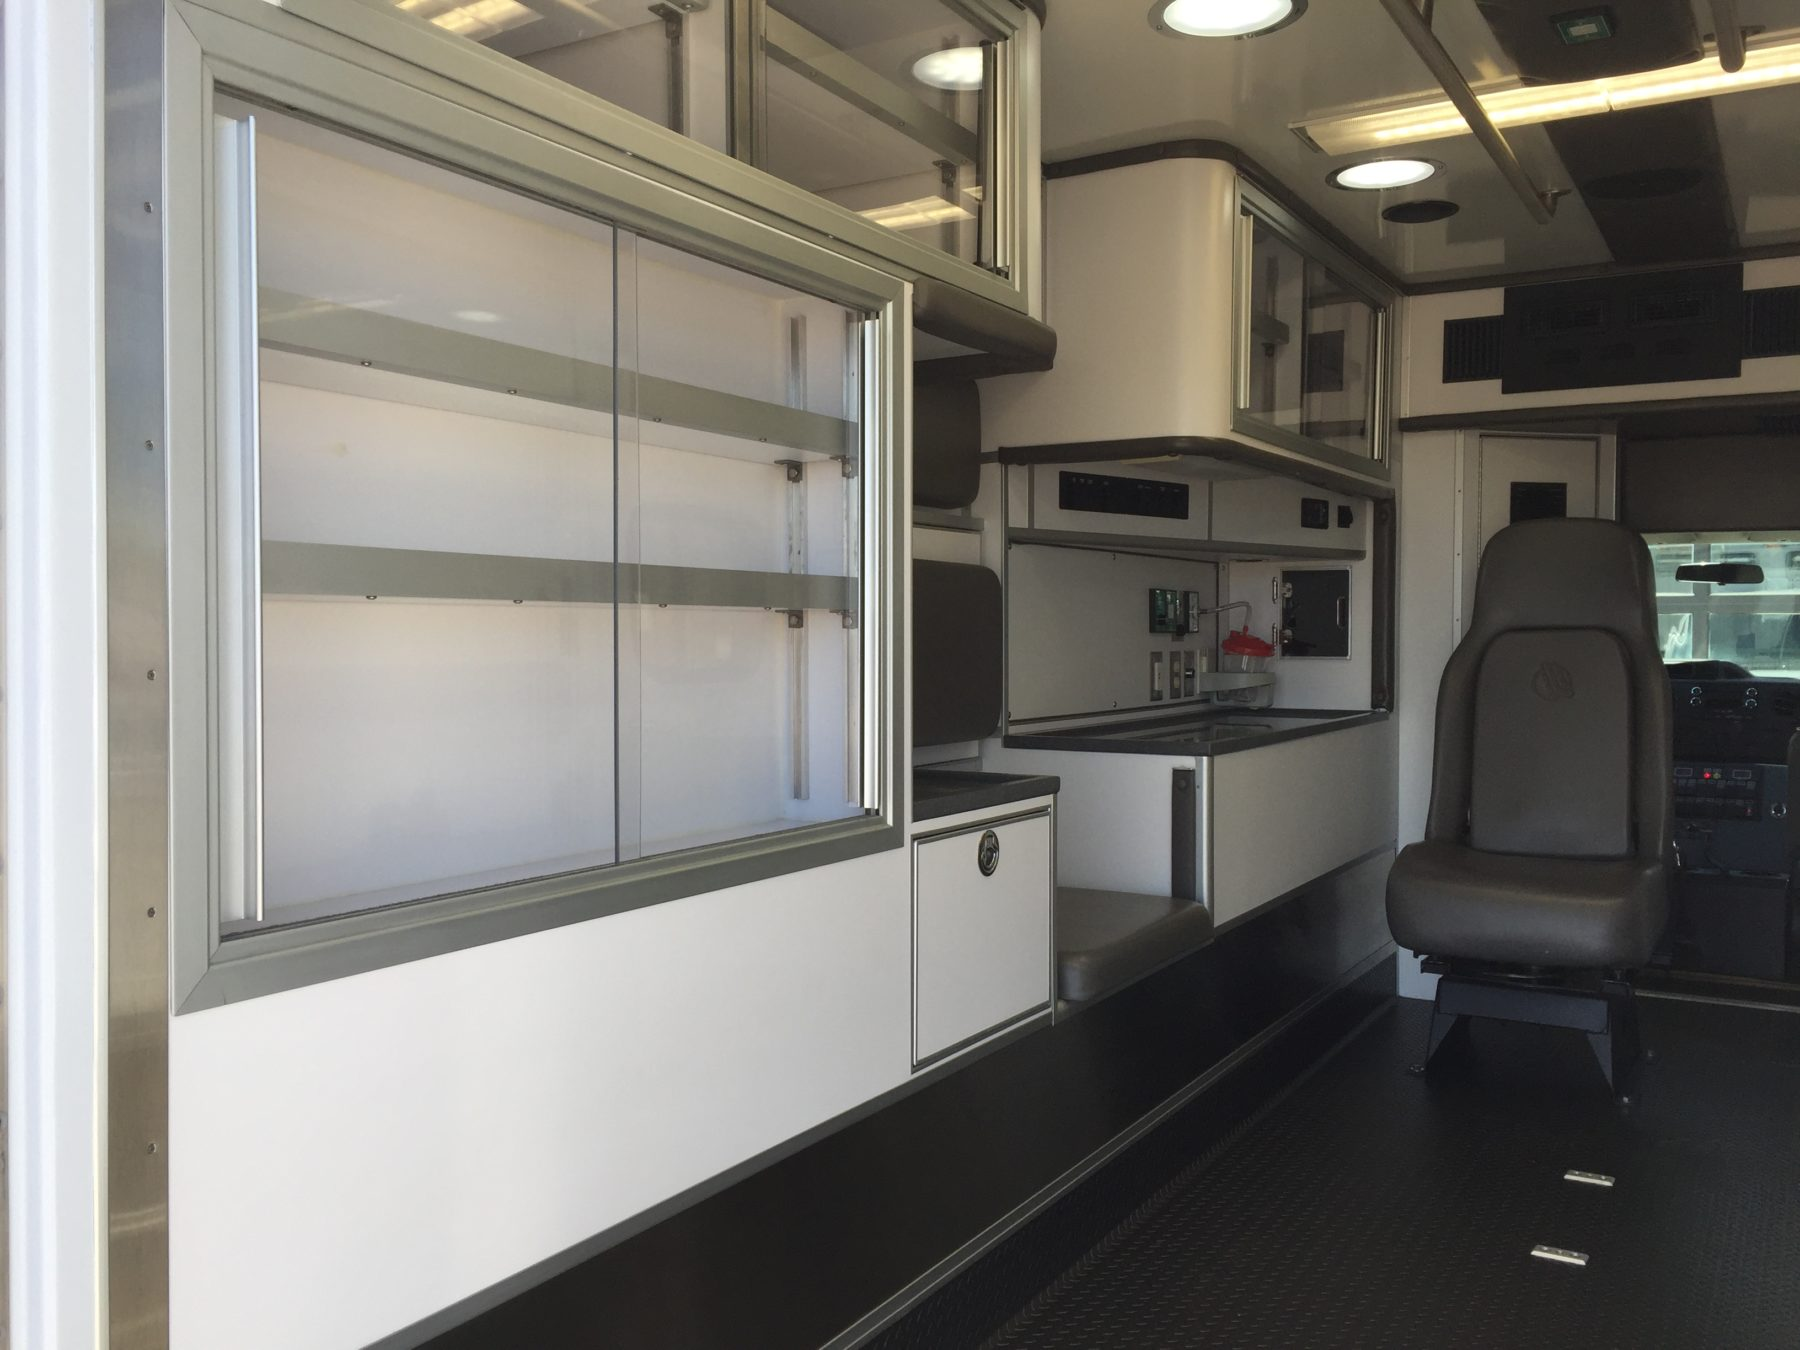 2017 Ford E450 Type 3 Ambulance For Sale – Picture 10